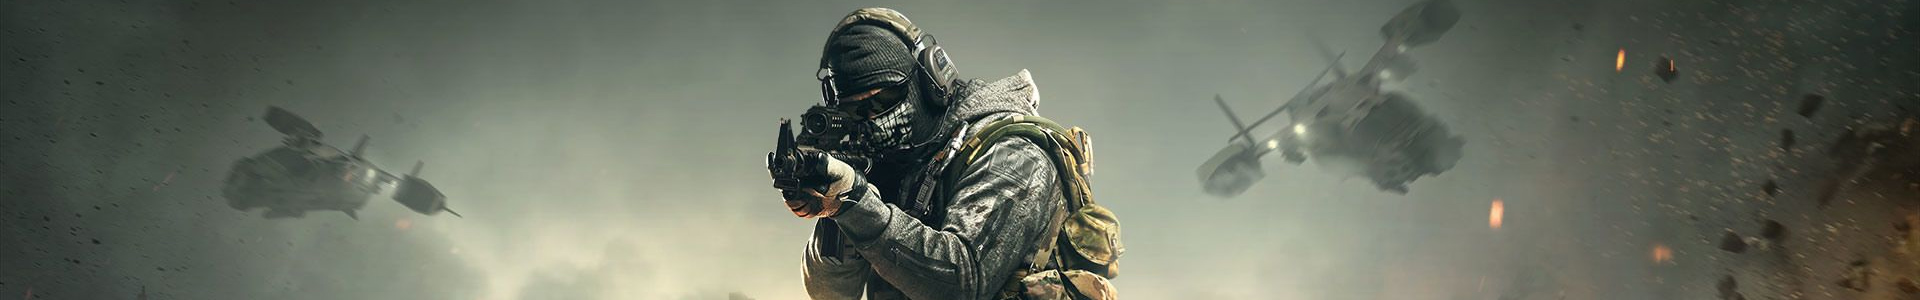 call-of-duty-mobile-banner